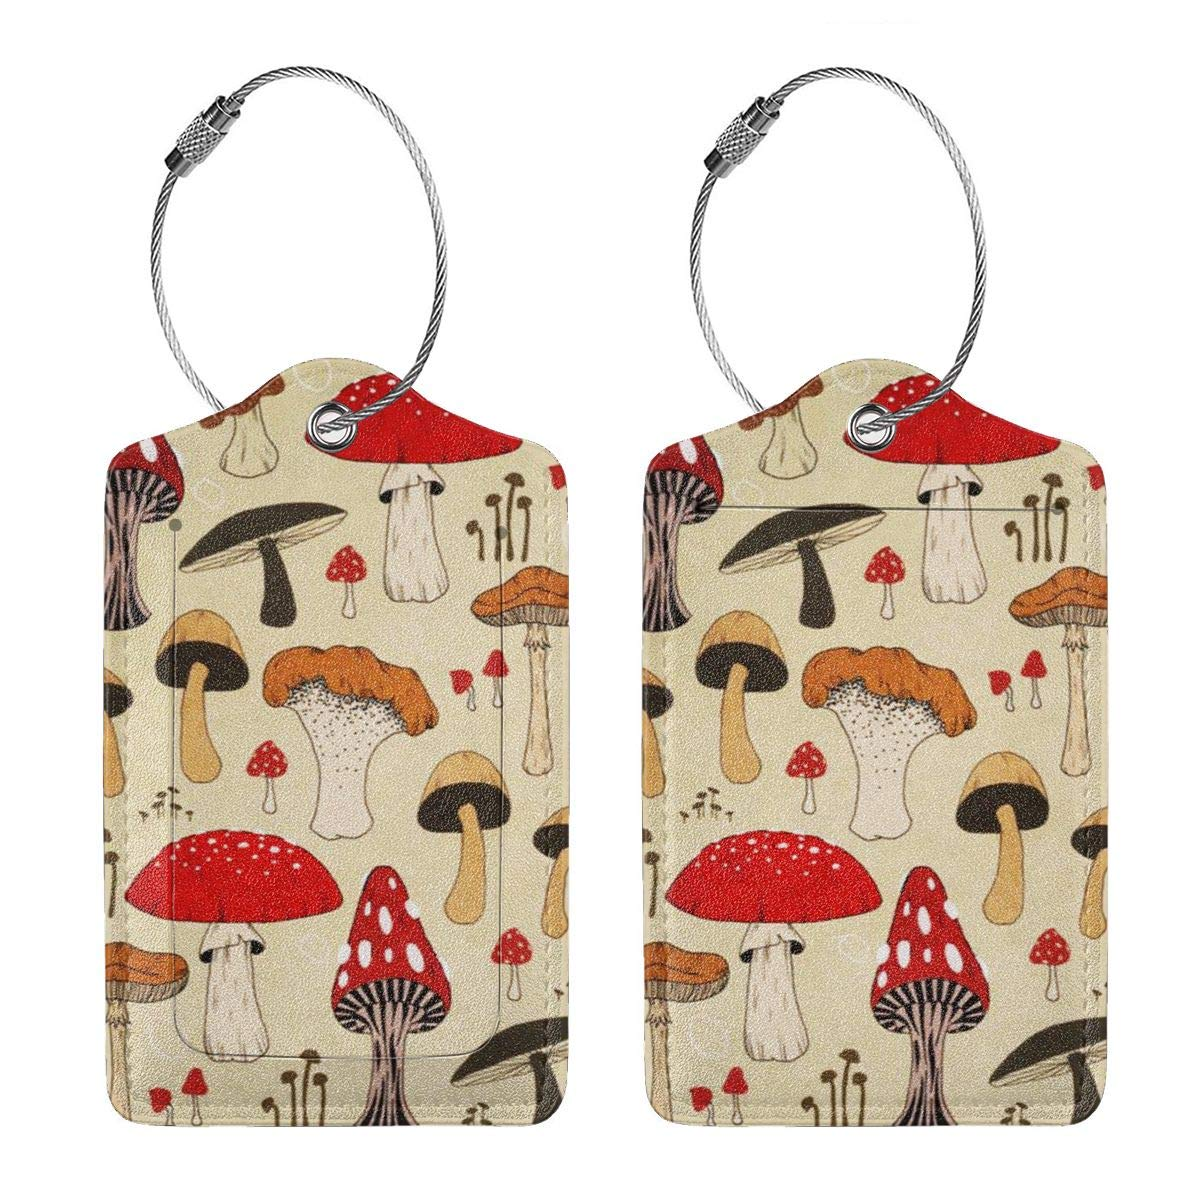 The Various Mushroom Art Luggage Tag Label Travel Bag Label With Privacy Cover Luggage Tag Leather Personalized Suitcase Tag Travel Accessories